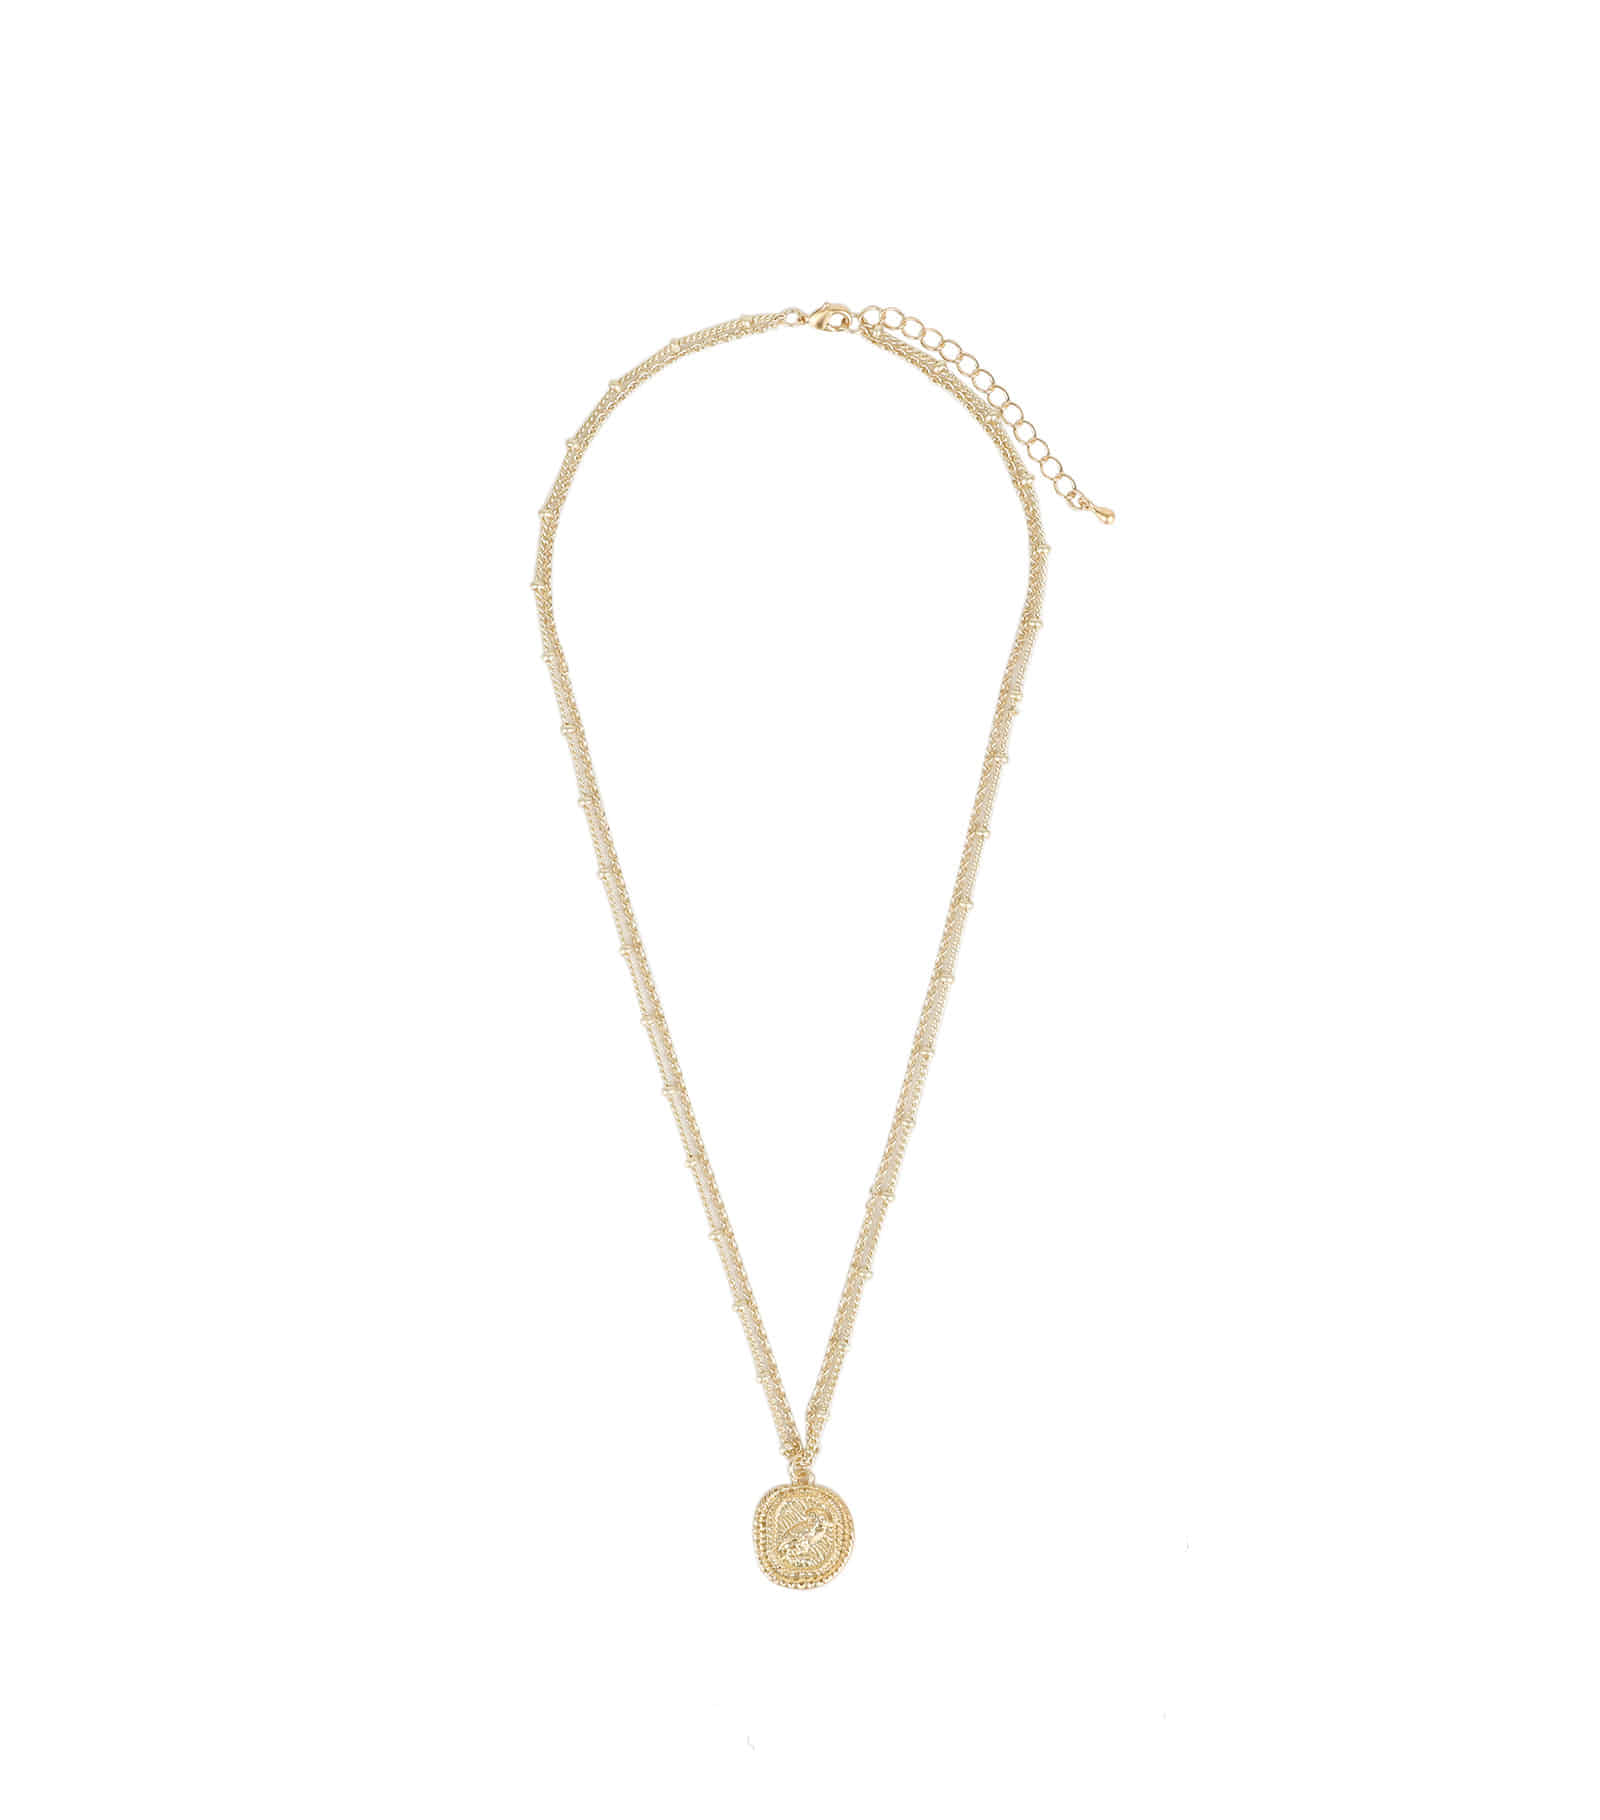 Bryn pendant chain necklace